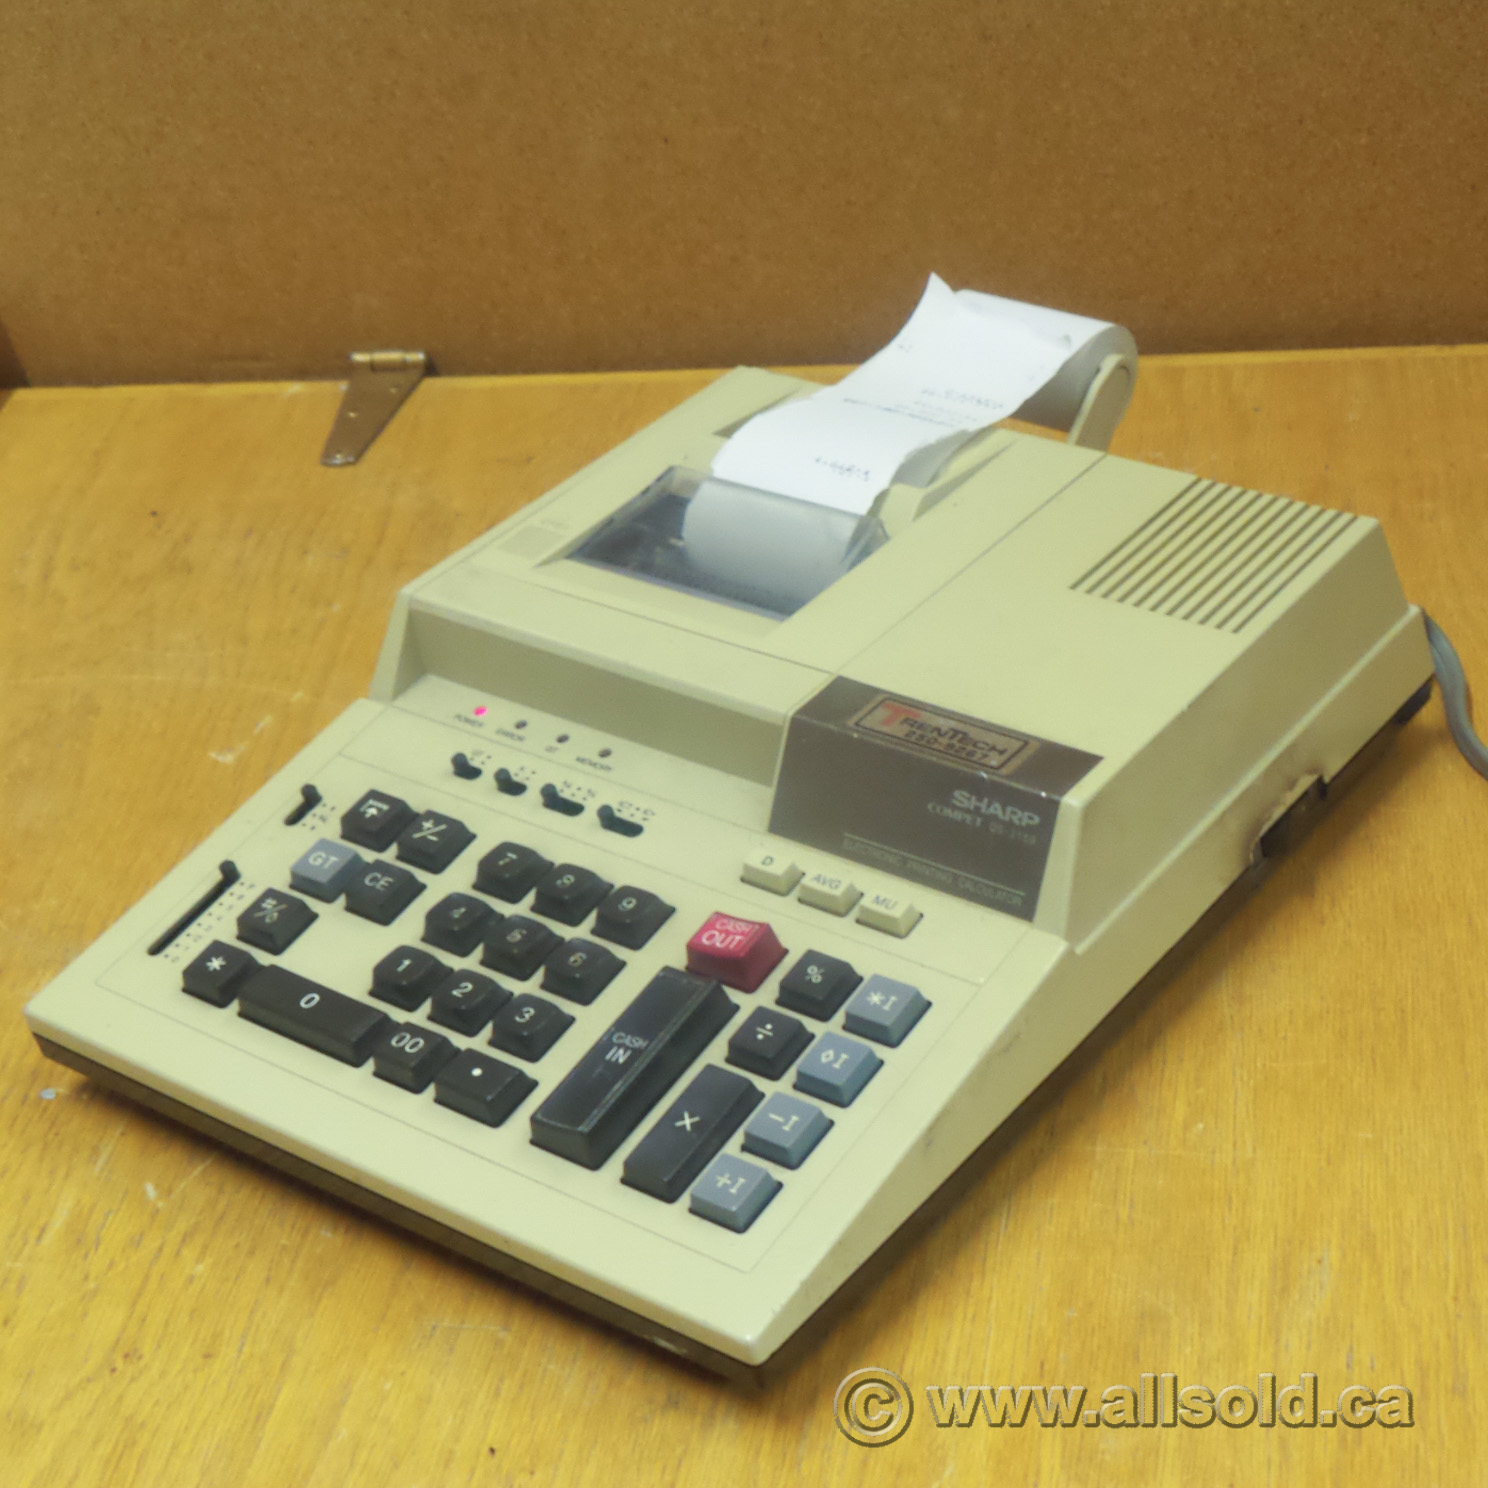 sharp compet qs 2159 adding machine calculator allsold sell used office furniture calgary used office furniture calgary se